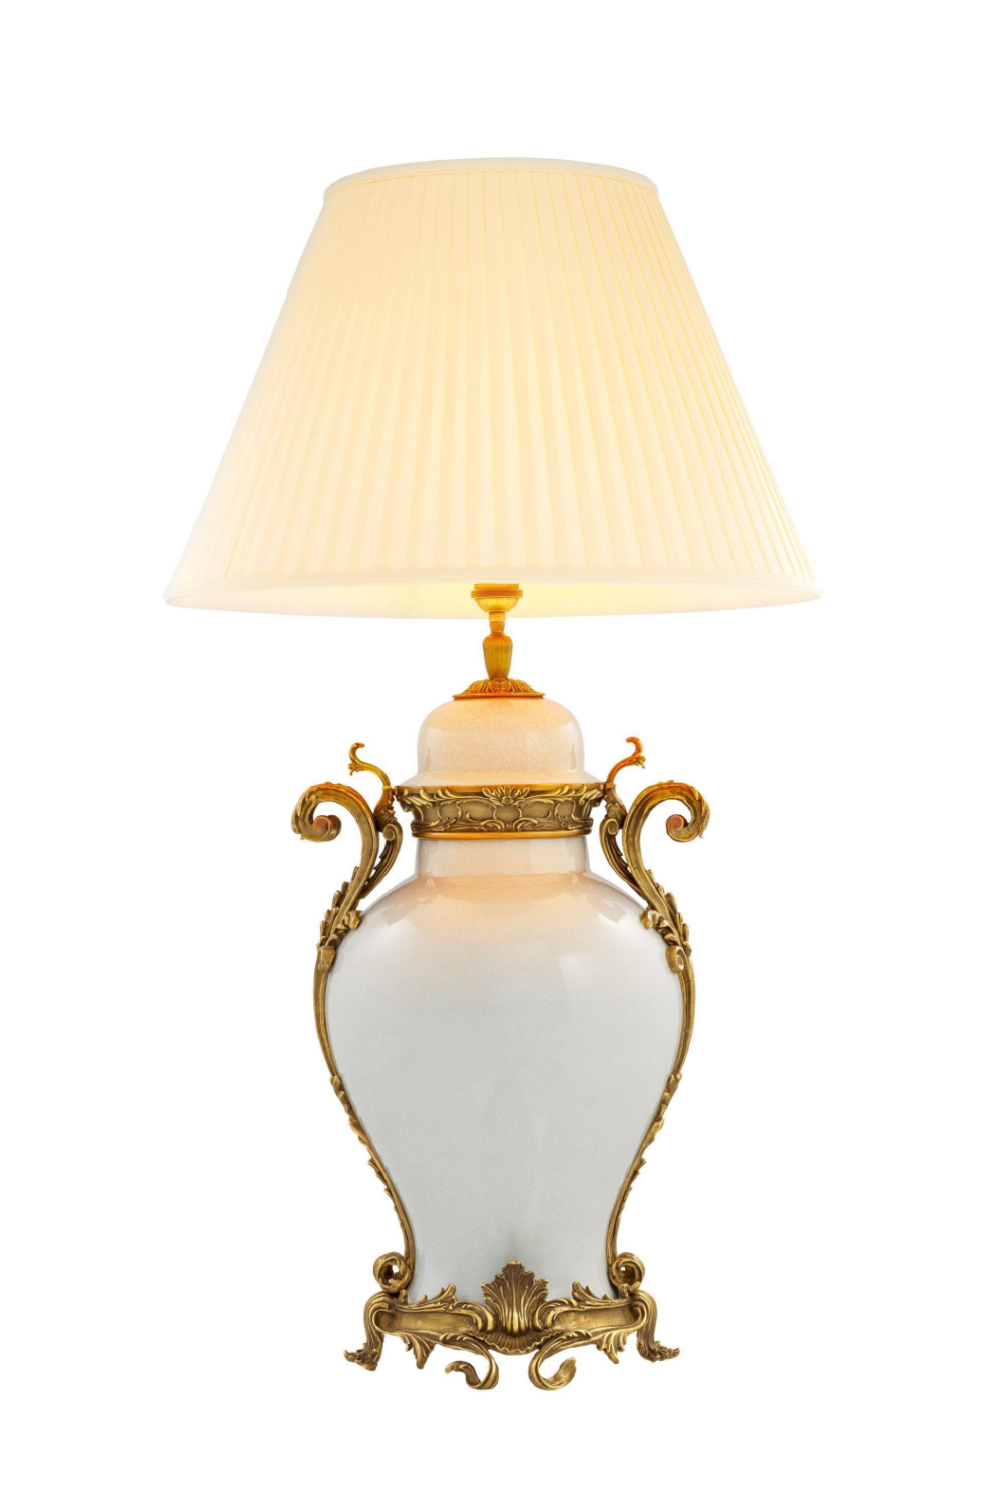 Cream Vase Table Lamp  | Eichholtz Armand | #1 Eichholtz Retailer